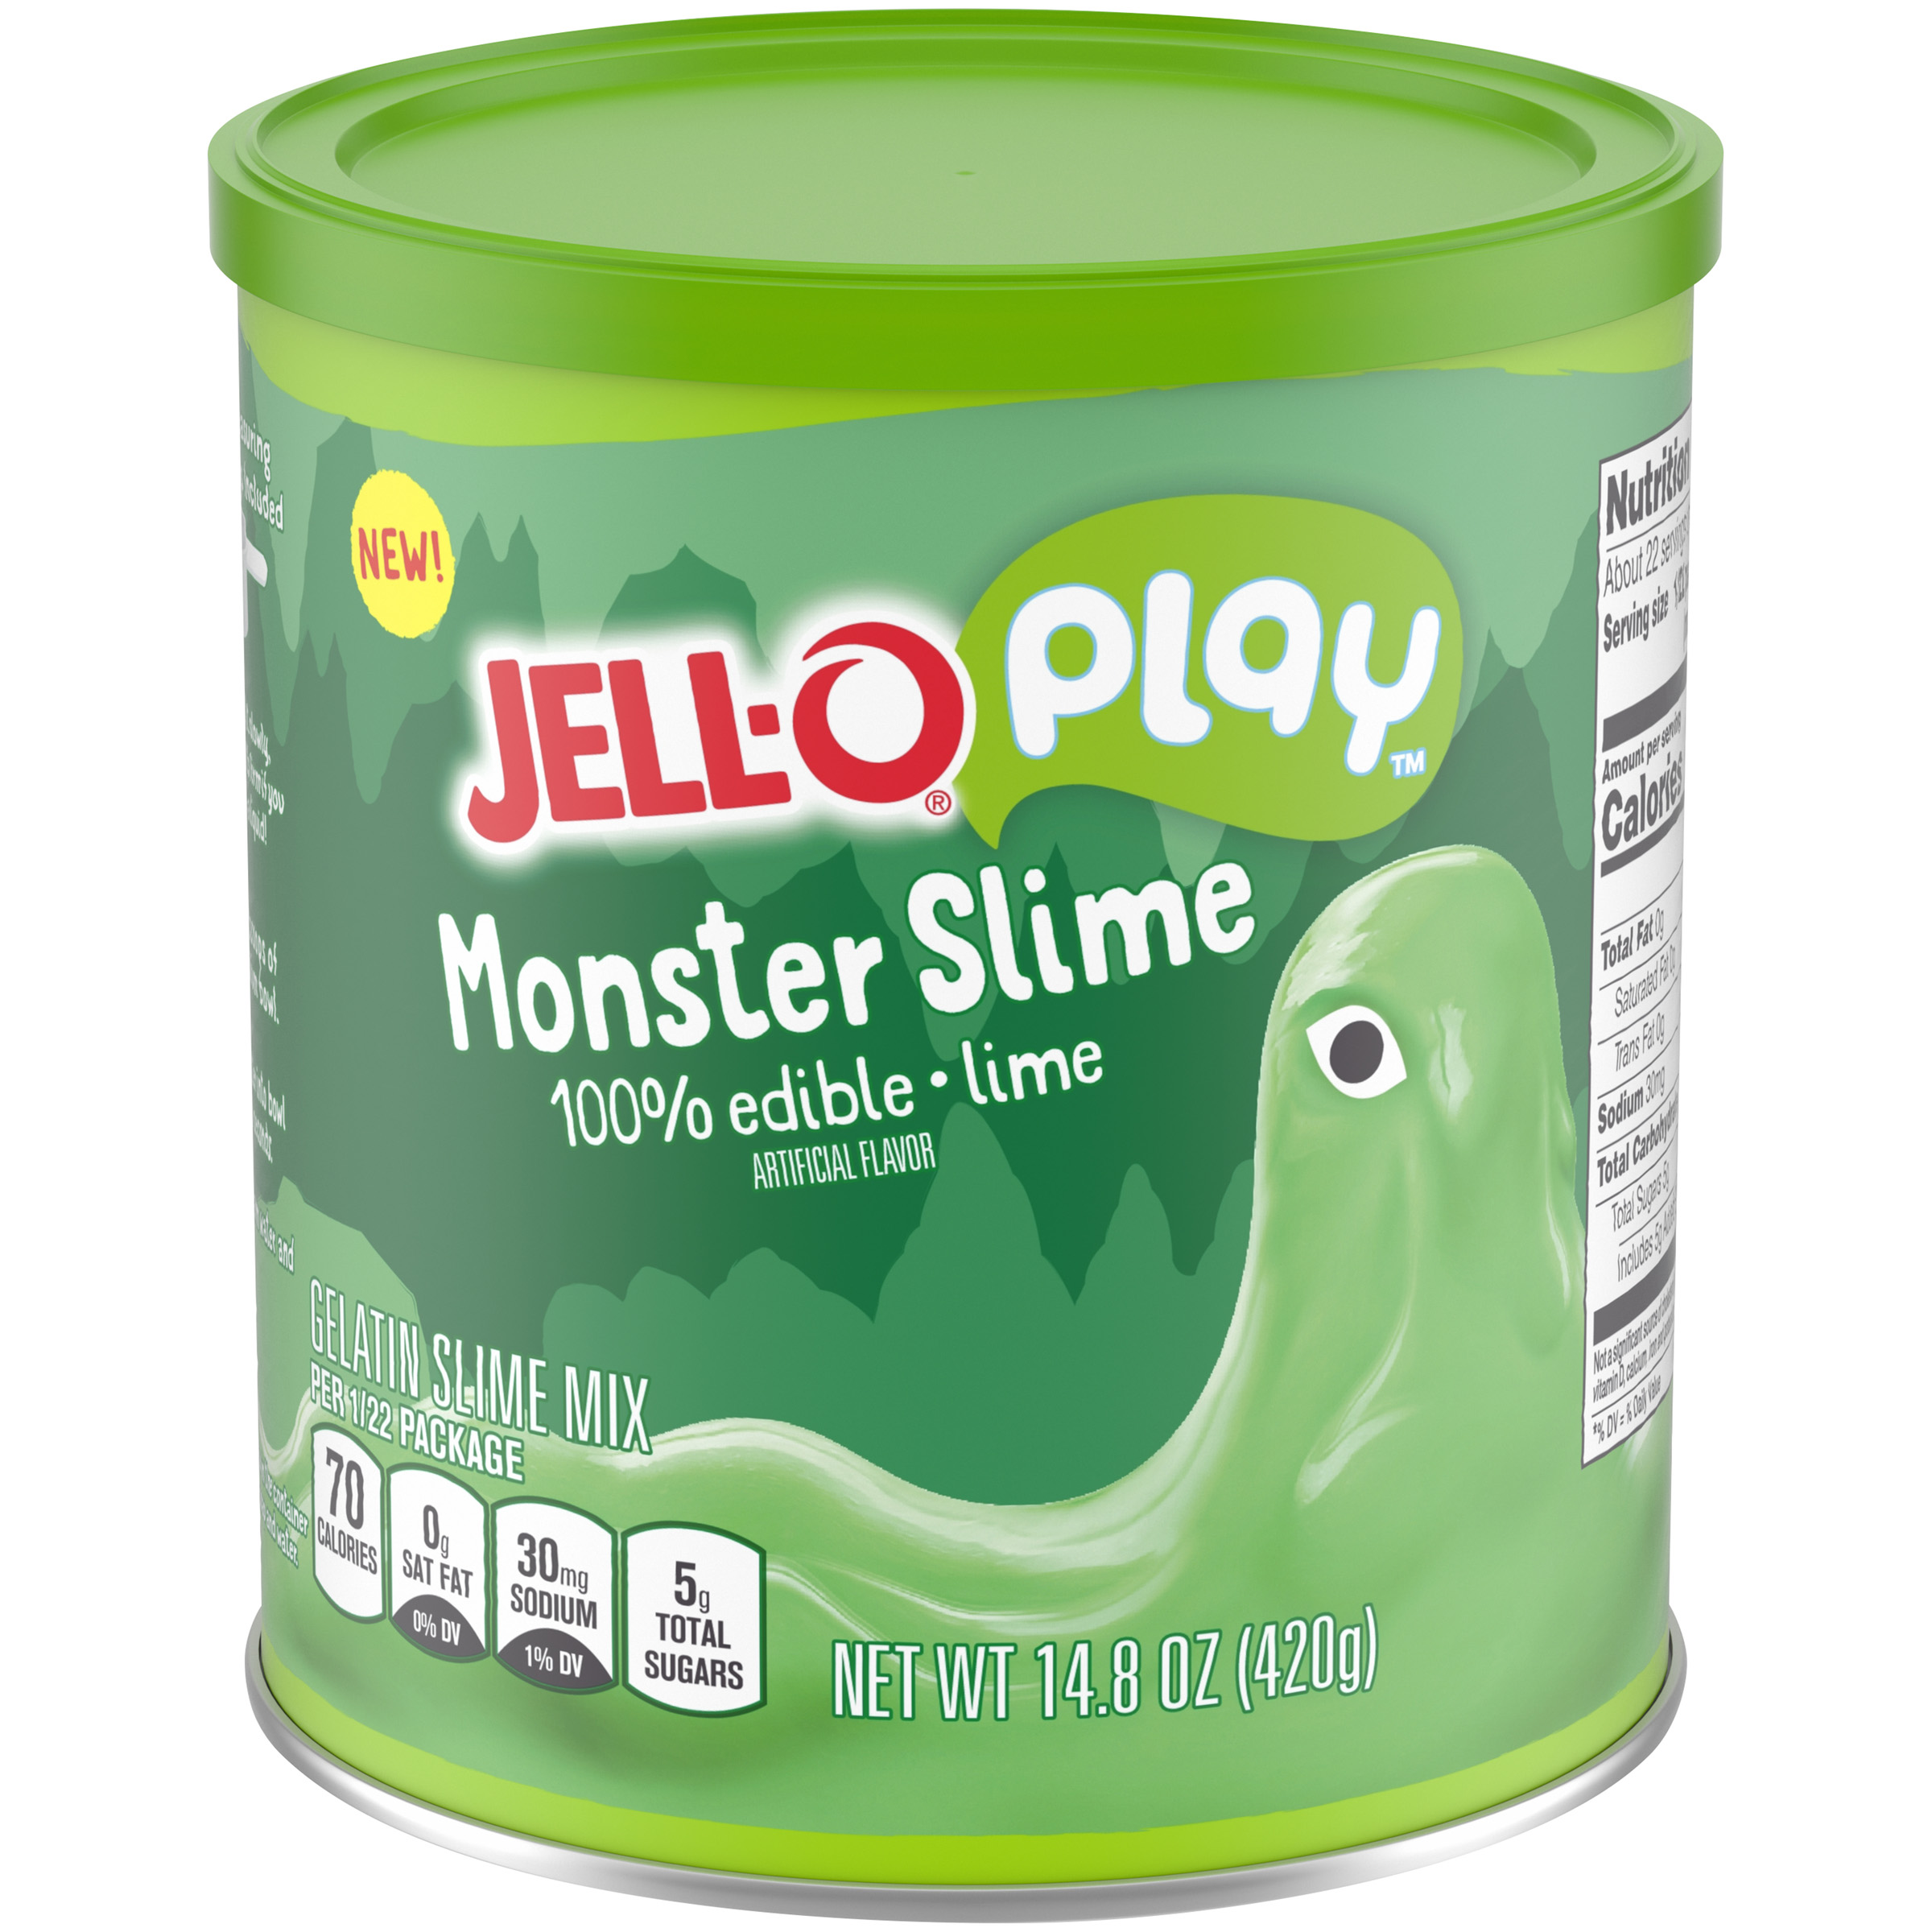 Canister of JELL-O edible slime in lime